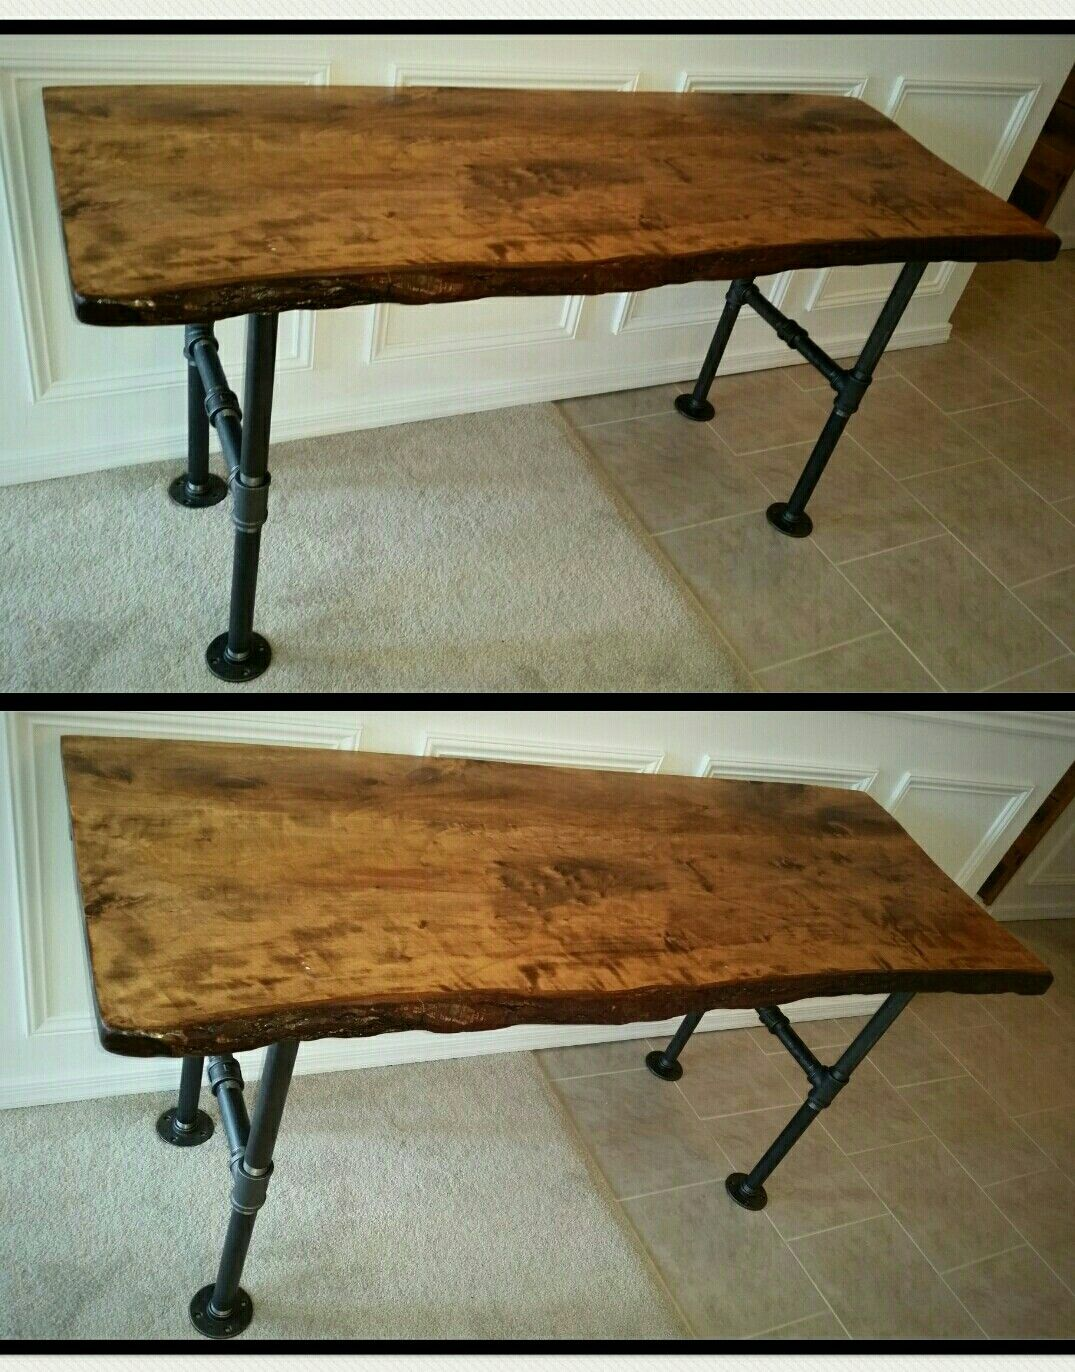 live edge wood slab desk. pipe desk. galvanized metal pipe desk